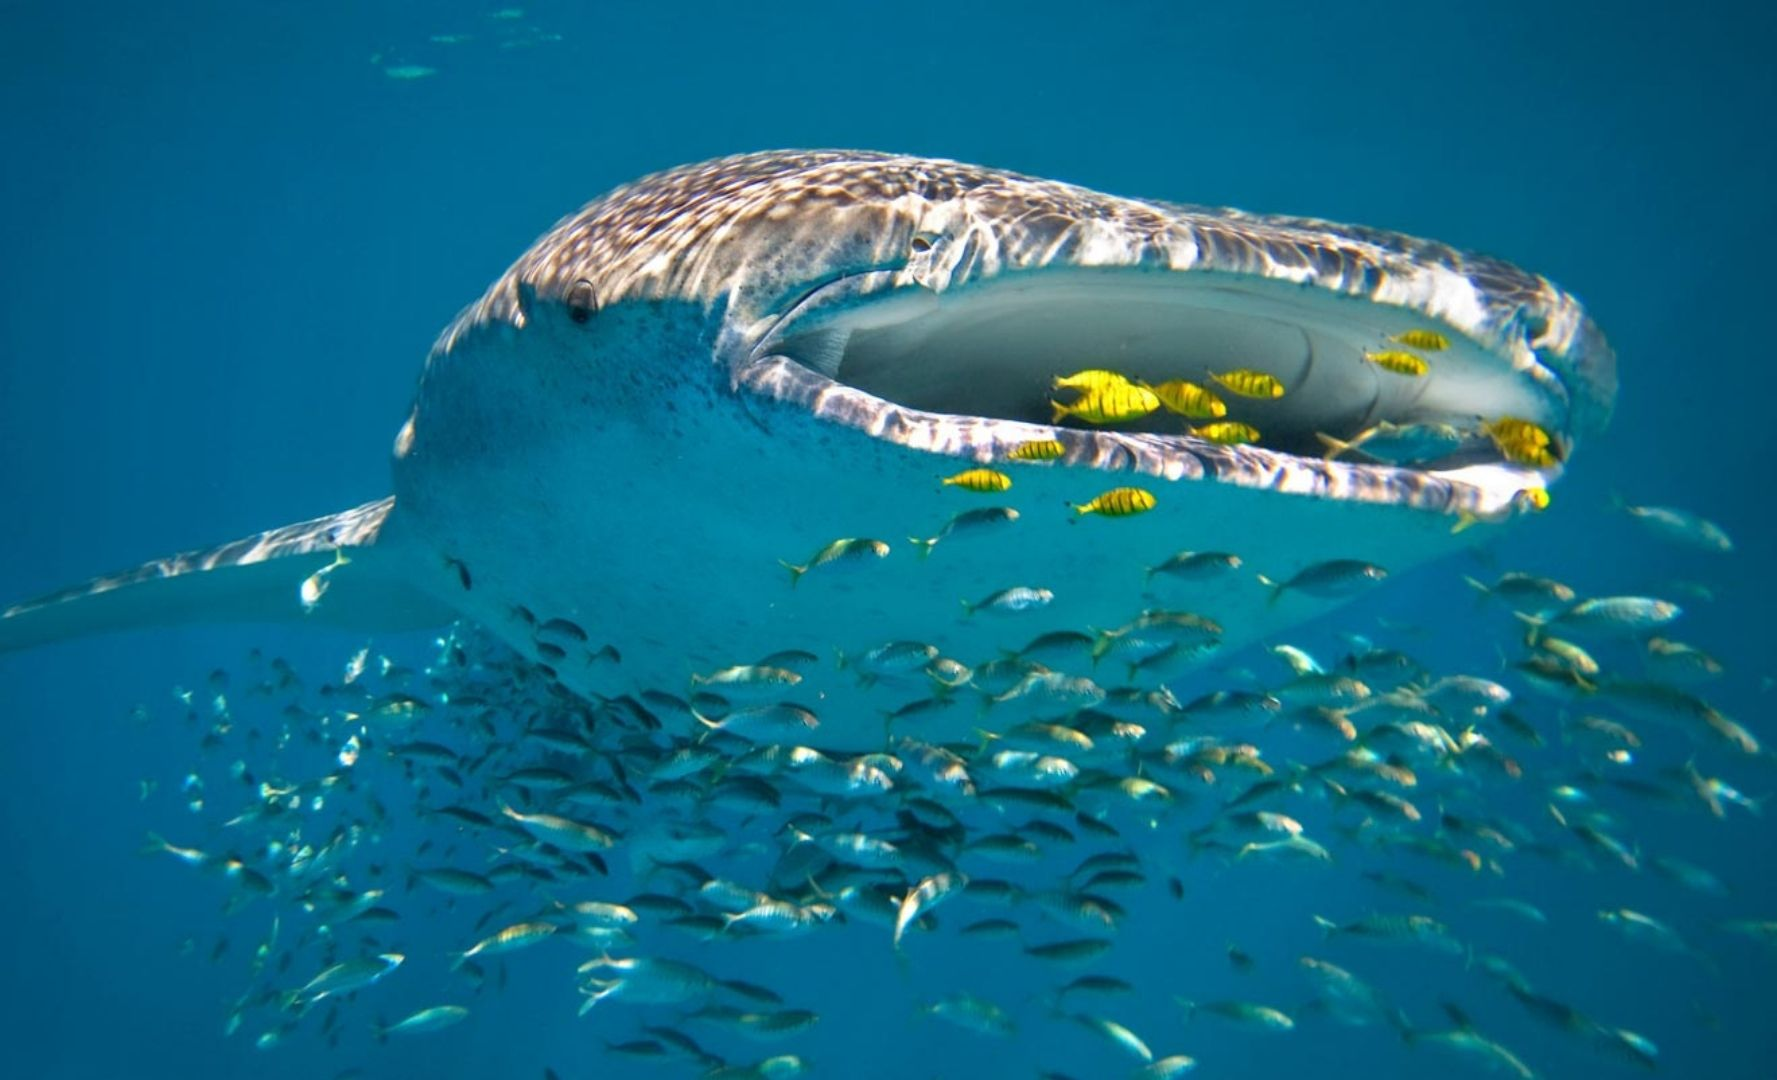 A whale shark underwater with fish around its mouth